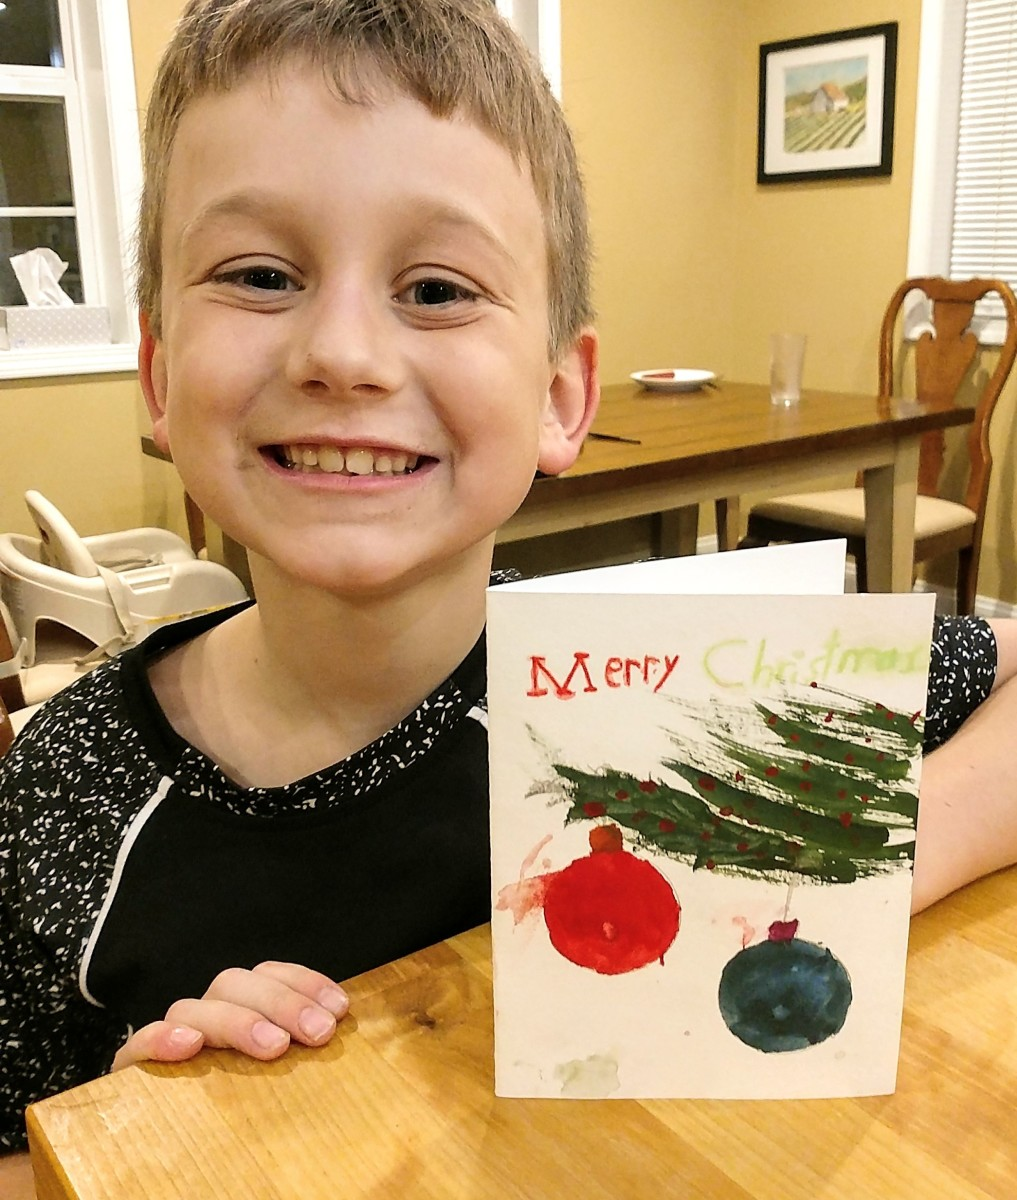 Get out the watercolor paints and make Christmas cards together.